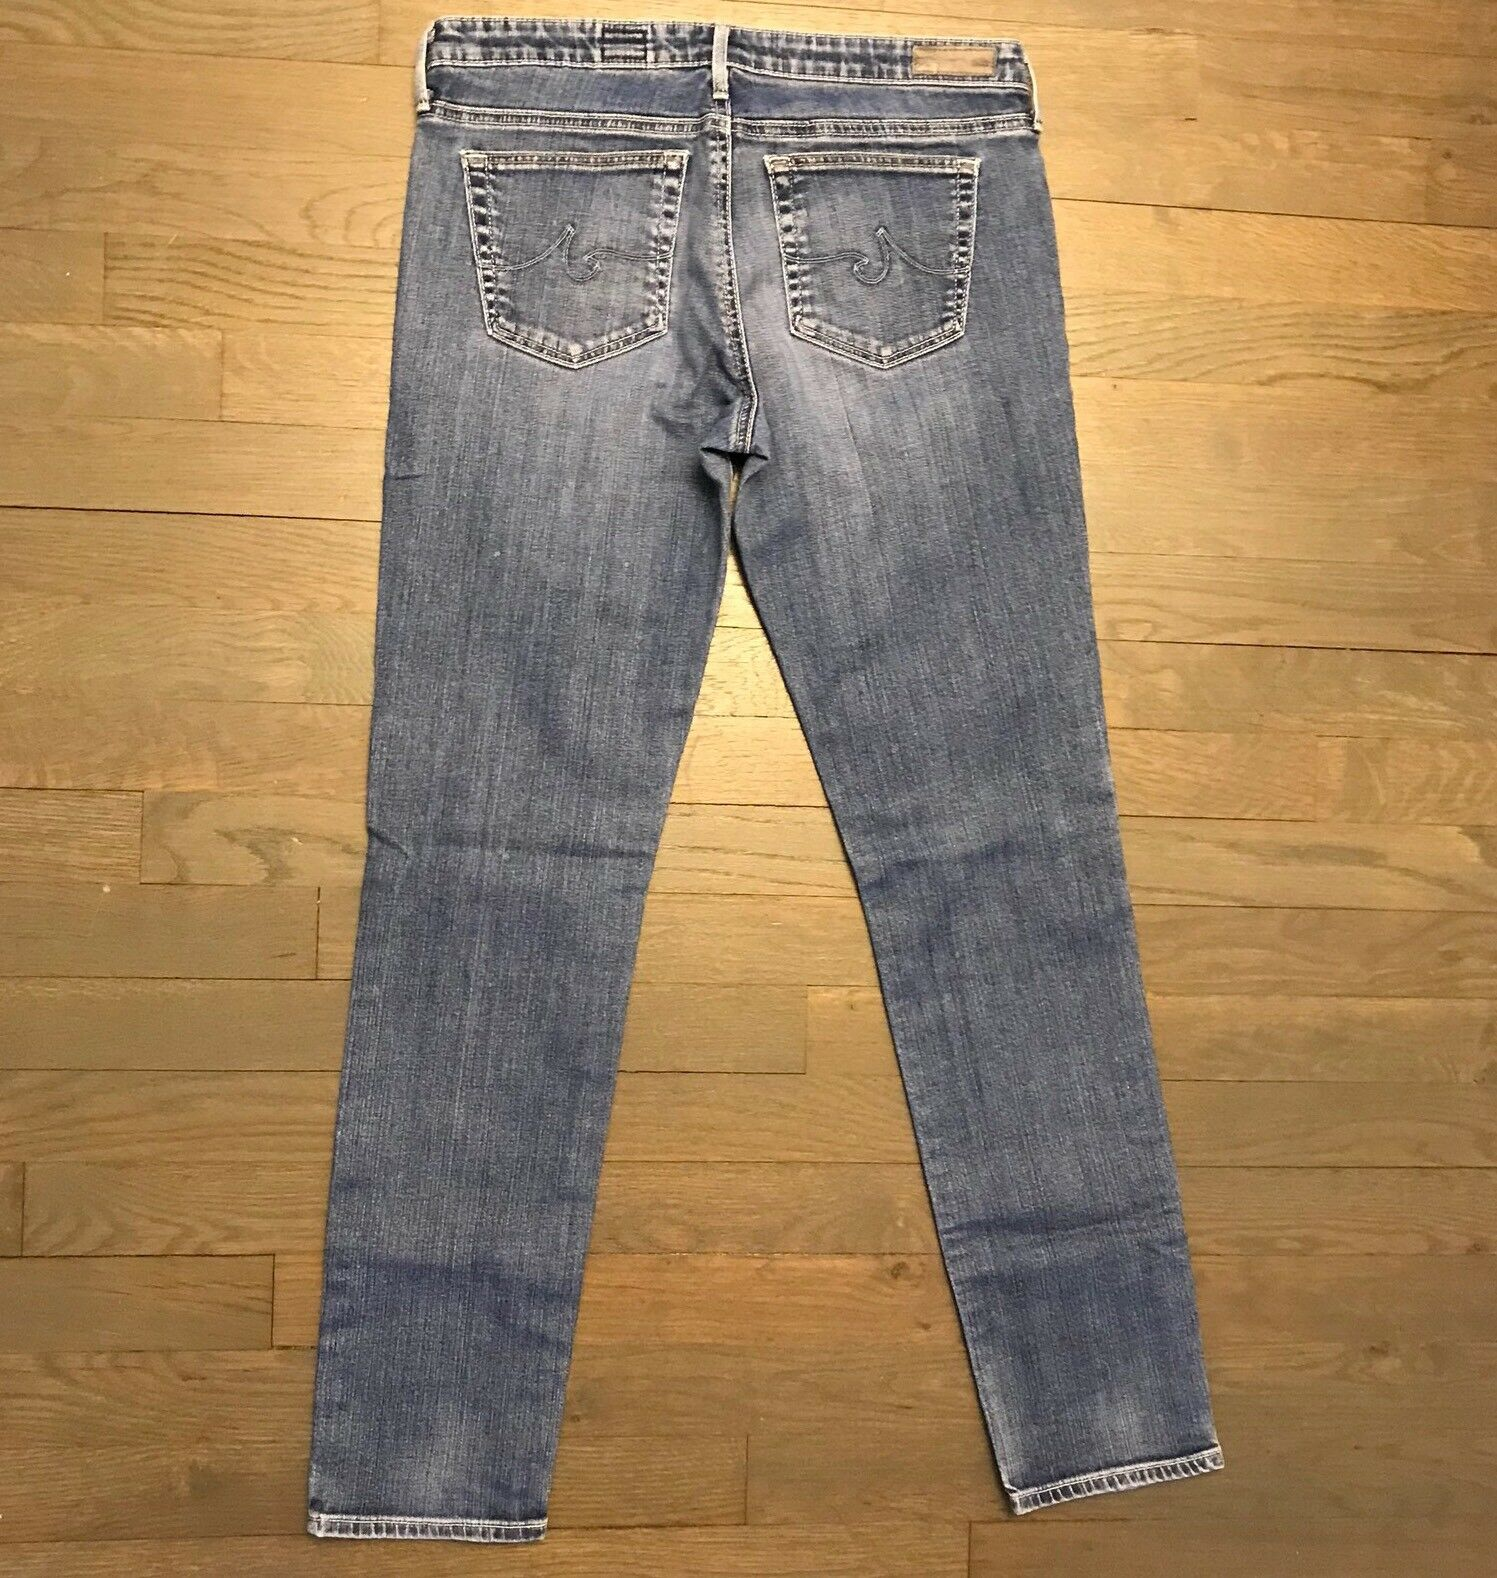 AG Adriano goldschmied The Stilt Cigarette Leg Stretch Denim Jeans Woman's 29R